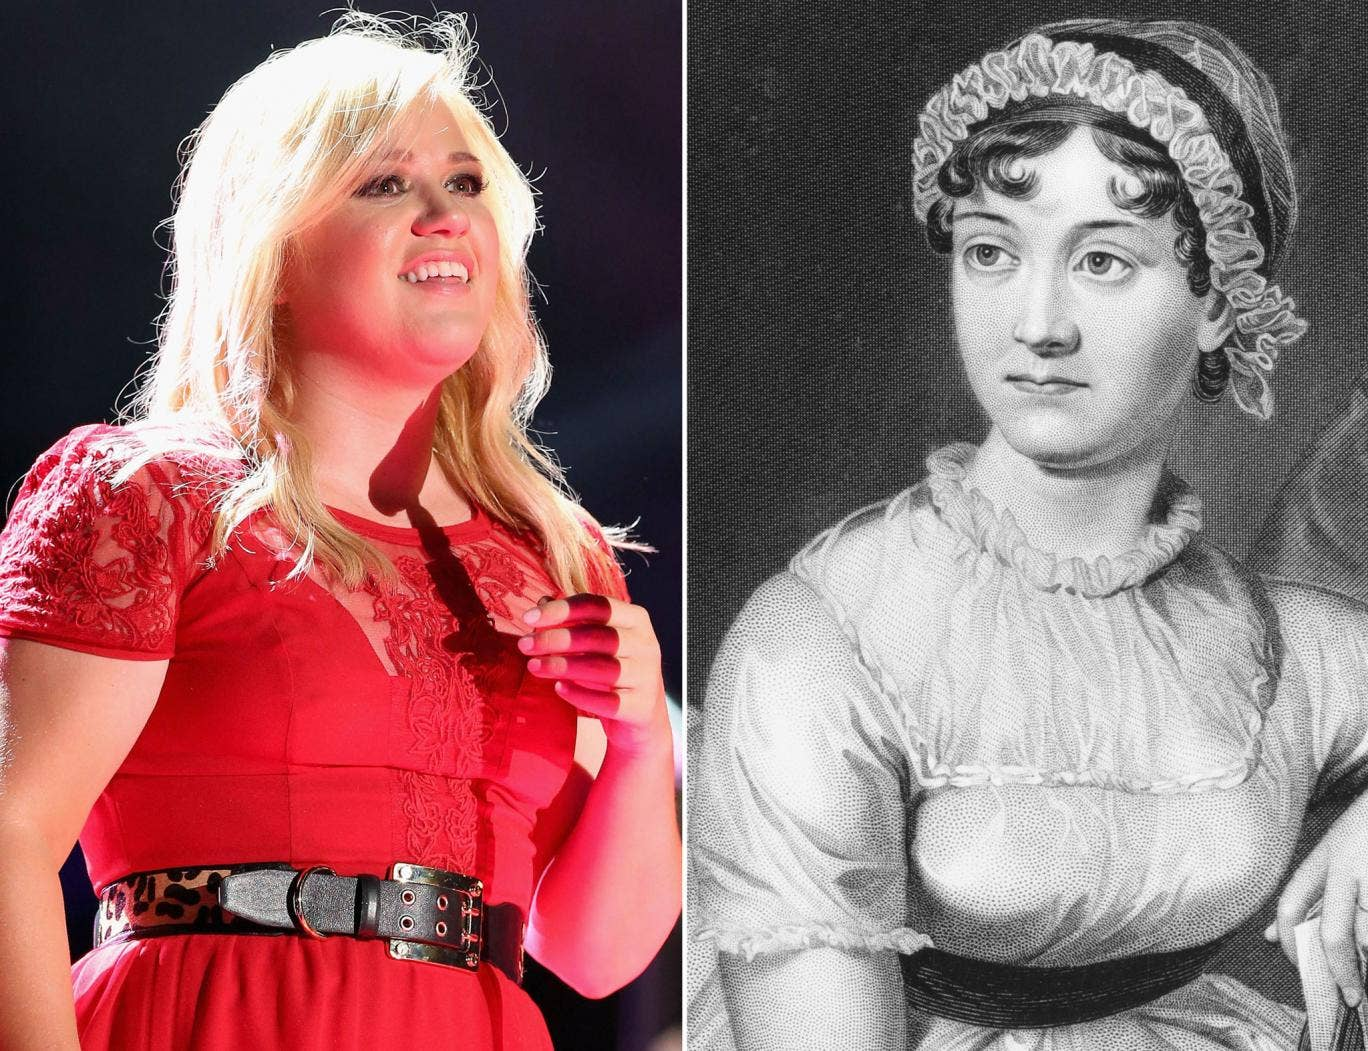 Kelly Clarkson shelled out £152,450 for Jane Austen's ring